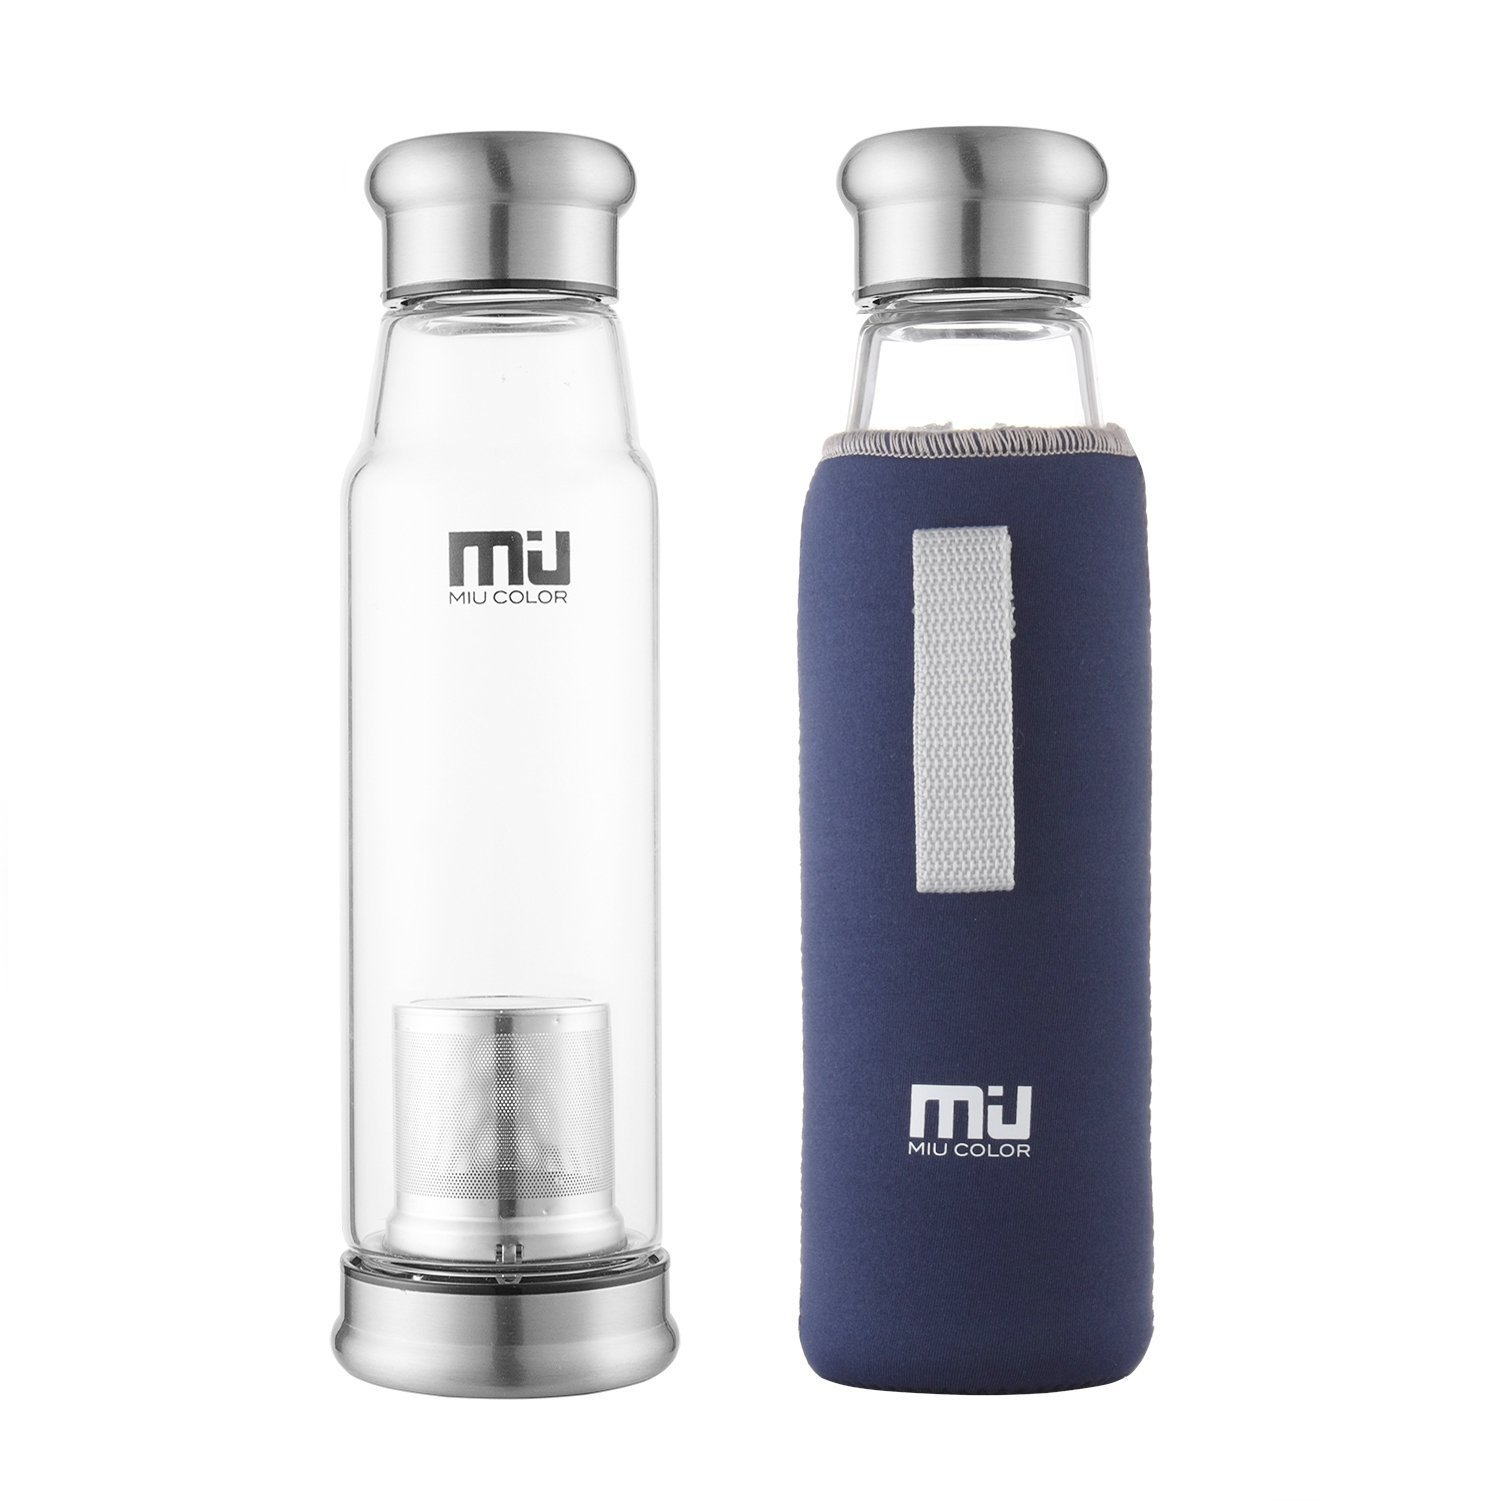 MIU COLOR Glasflasche